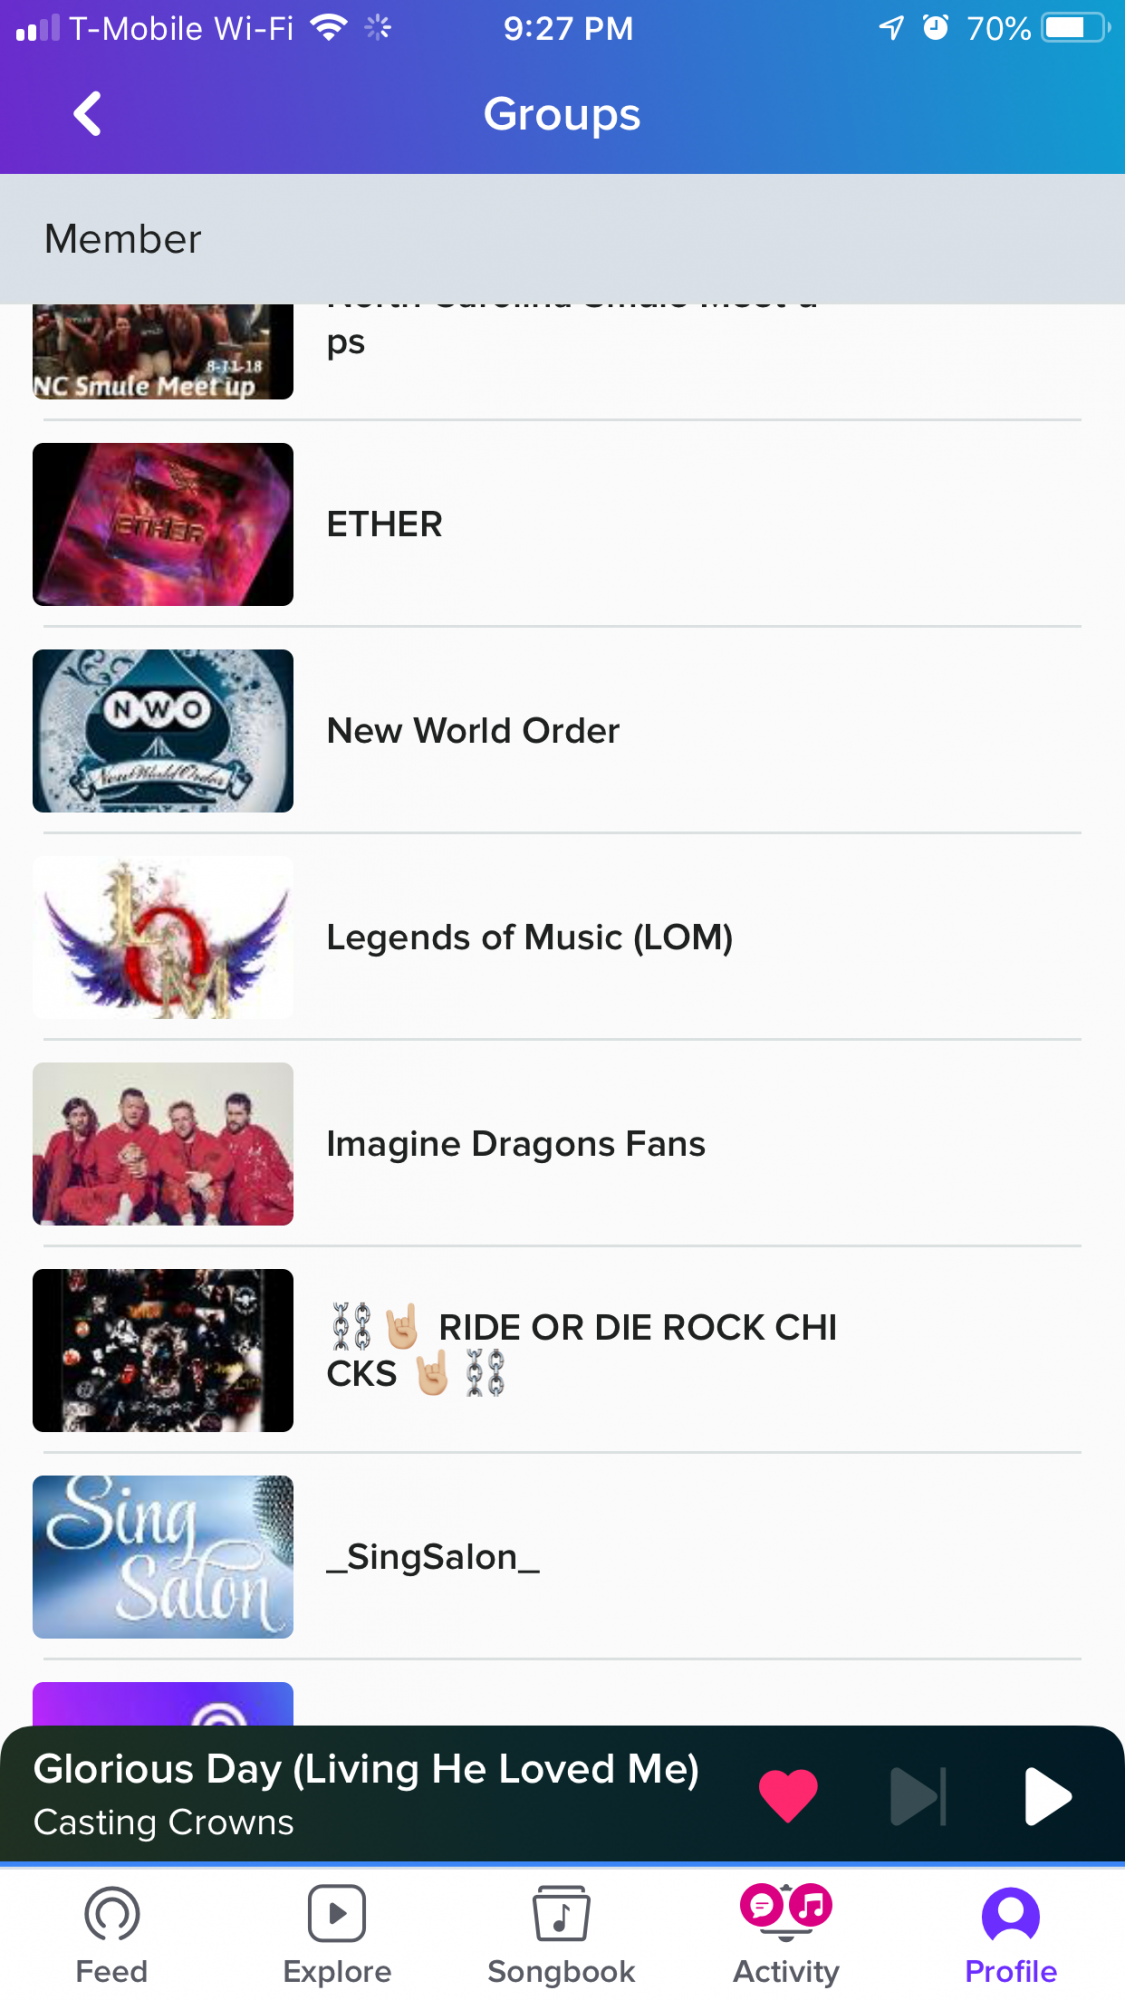 Smule launches in-app group feature - The Smule Sing! app